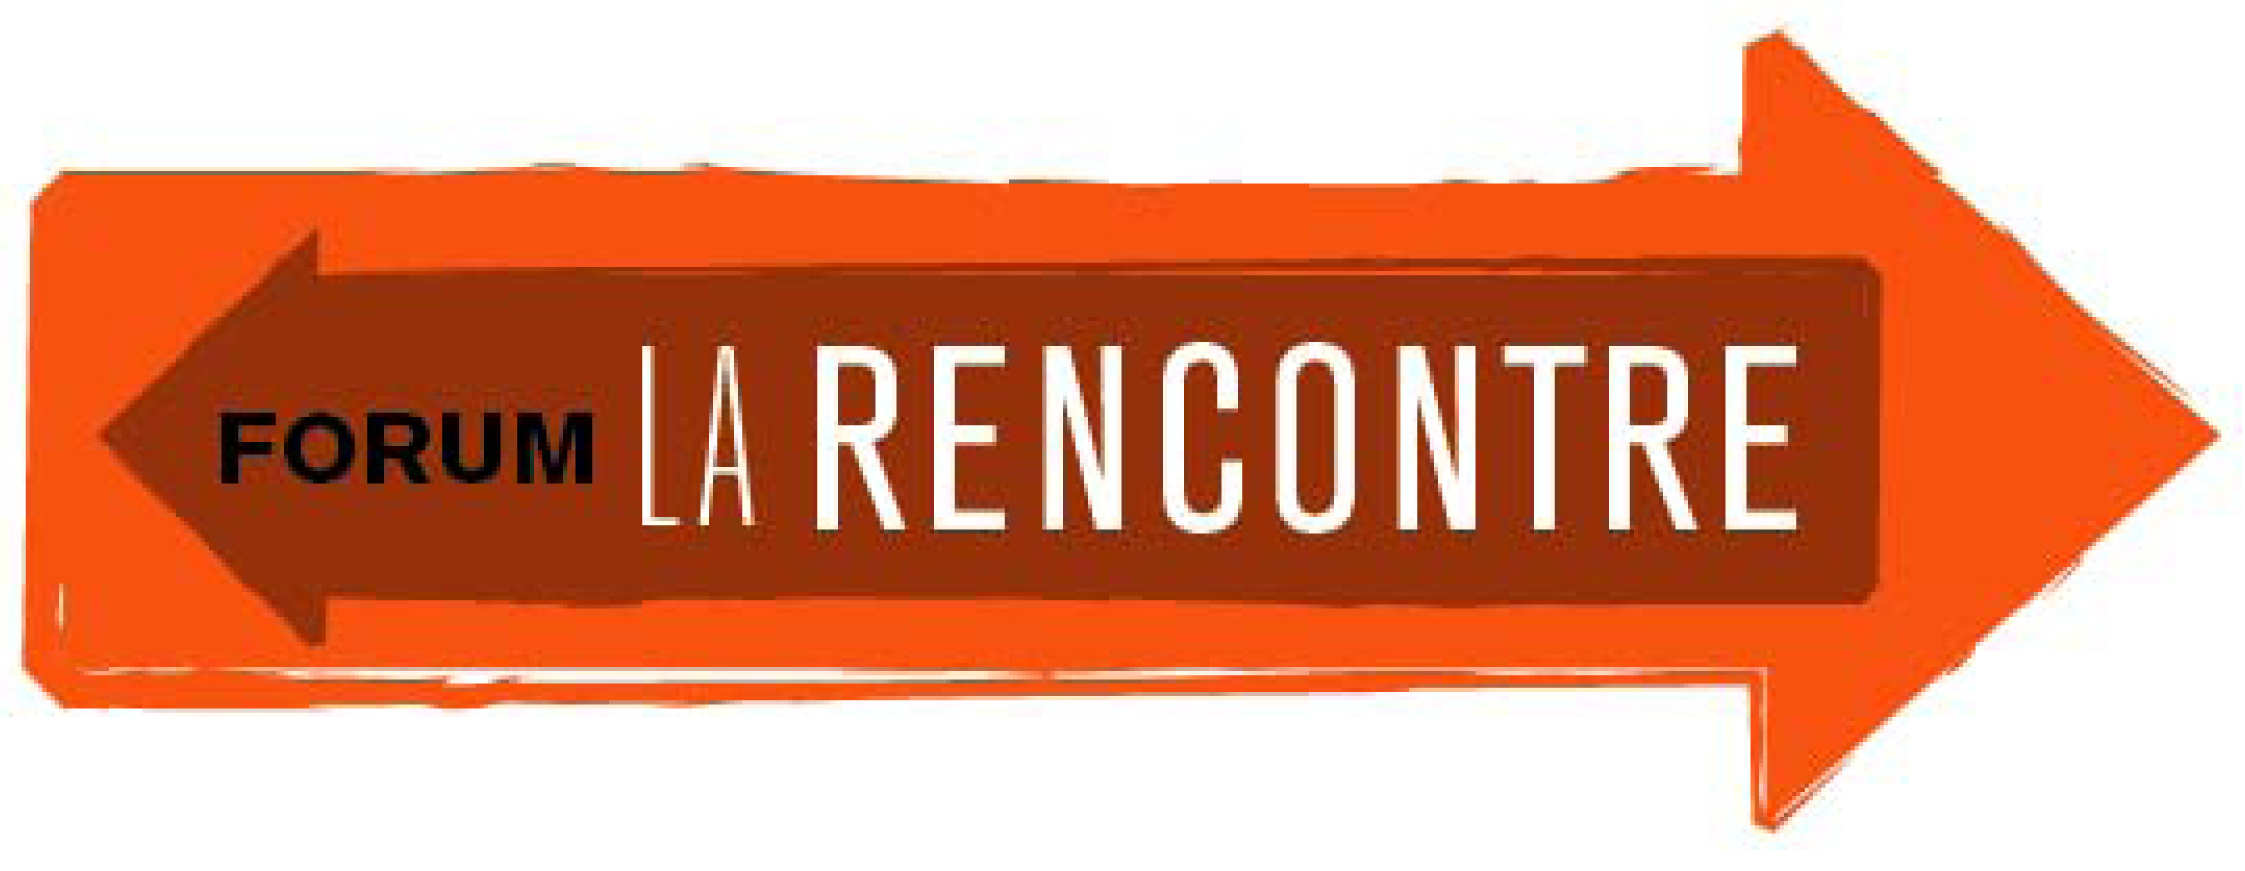 Site de rencontres meetcrunch